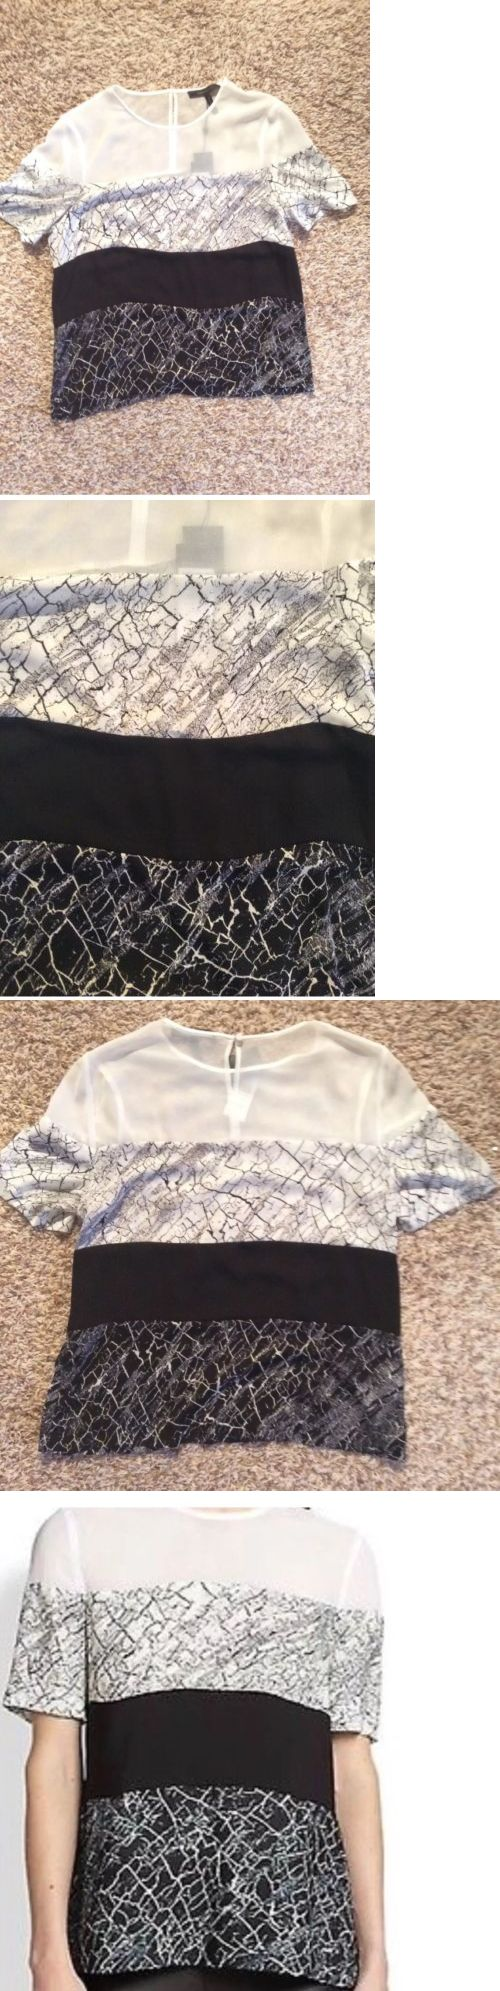 Women Tops And Blouses: New Womans Bcbgmaxazria Caletste Top Blouse Black And White Crackle Print BUY IT NOW ONLY: $35.0